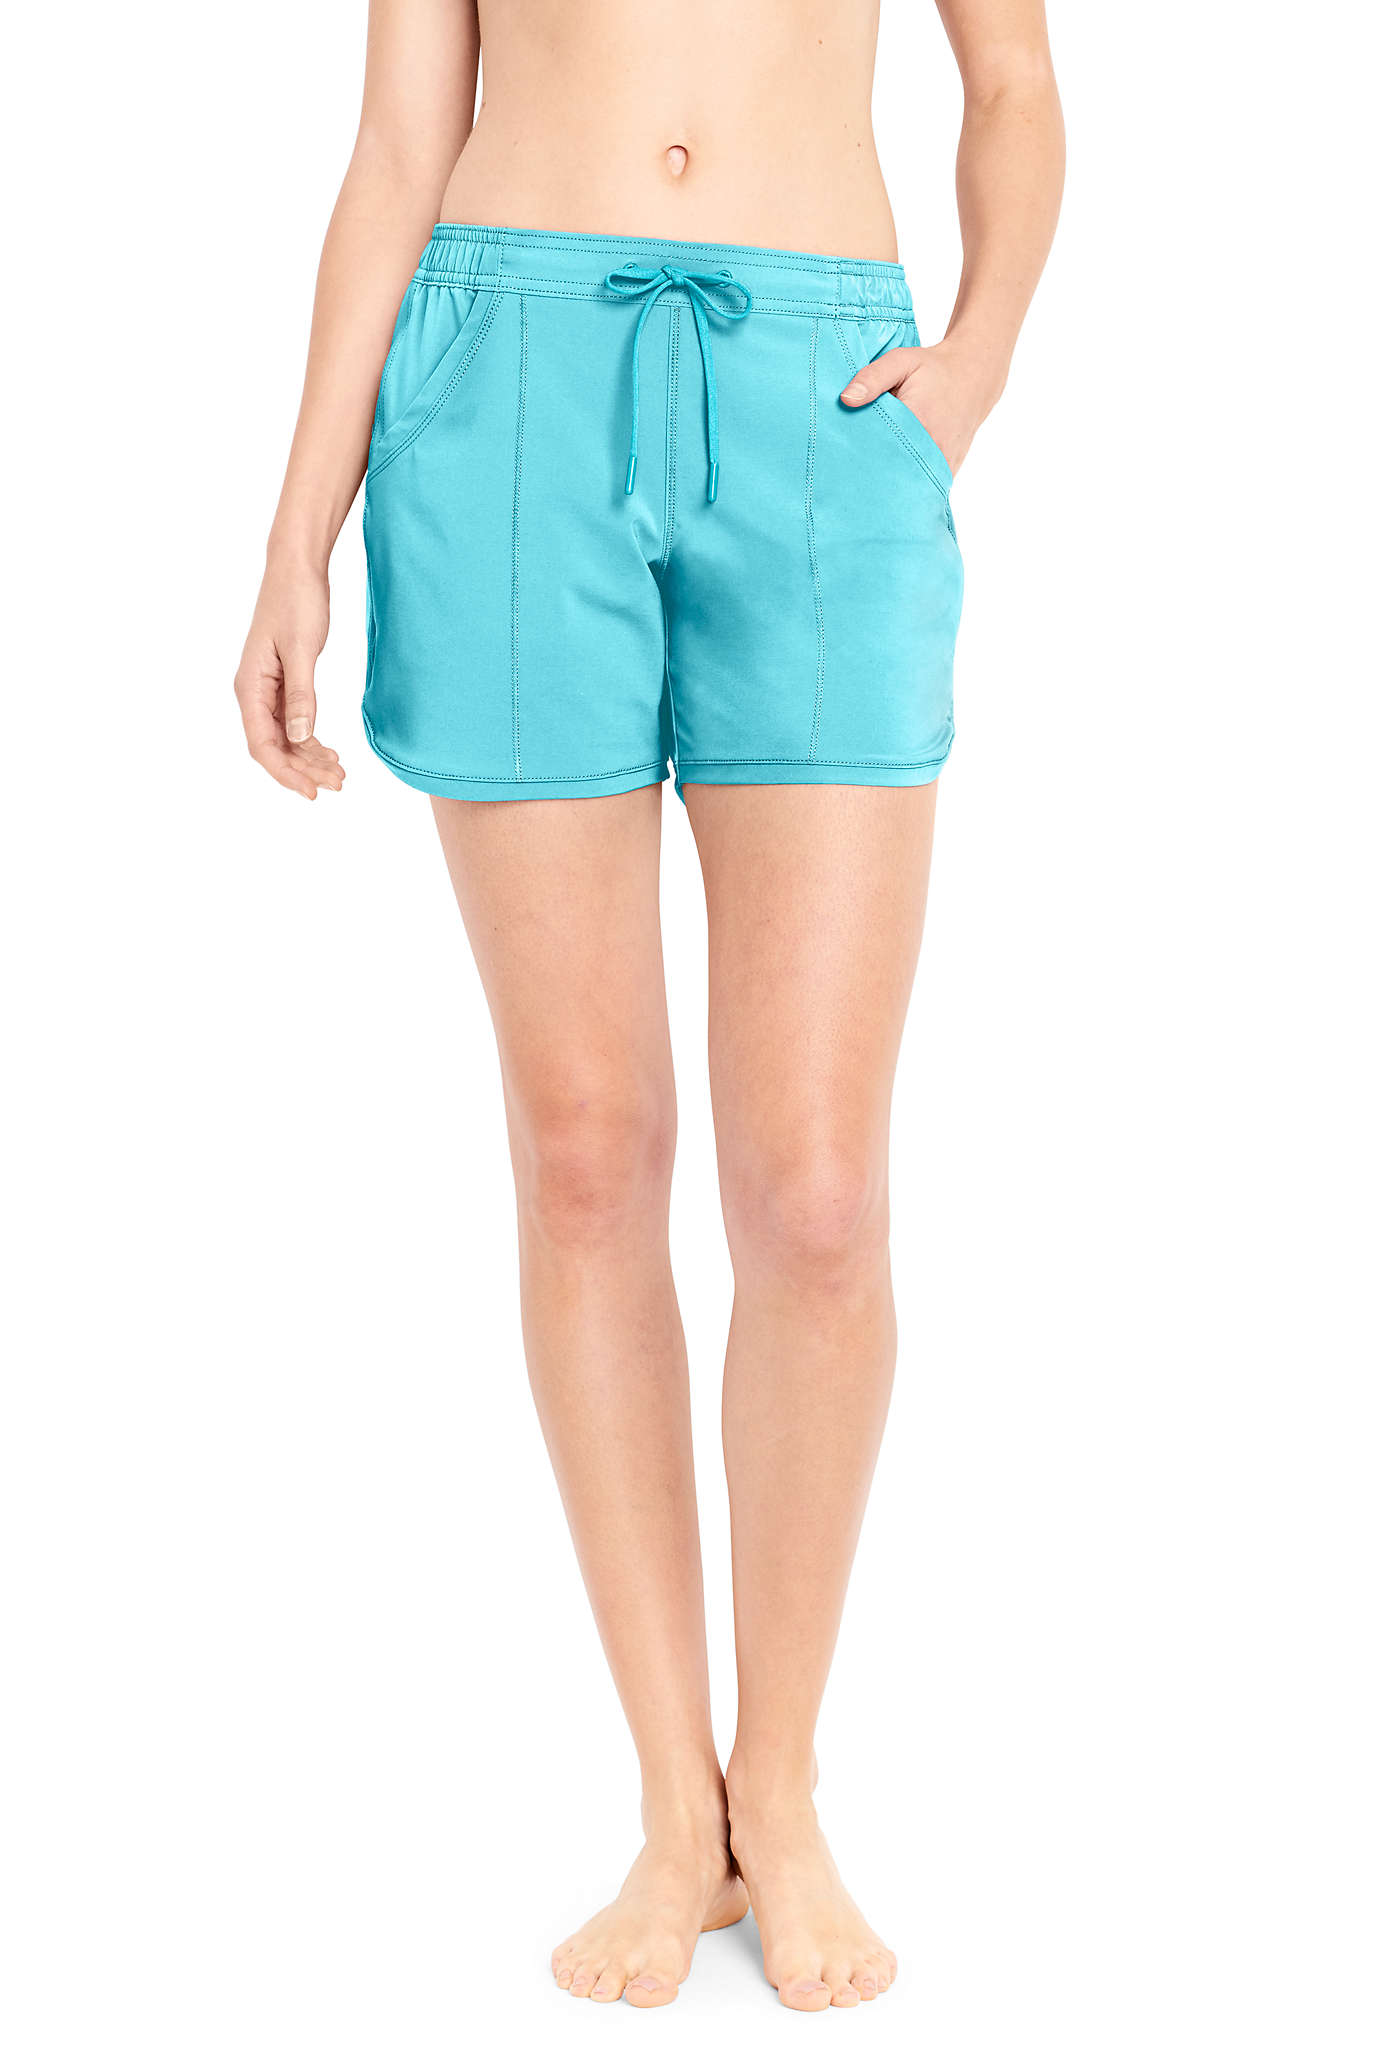 a7a8f429674e Swim Shorts | Women's Board Shorts | Lands' End